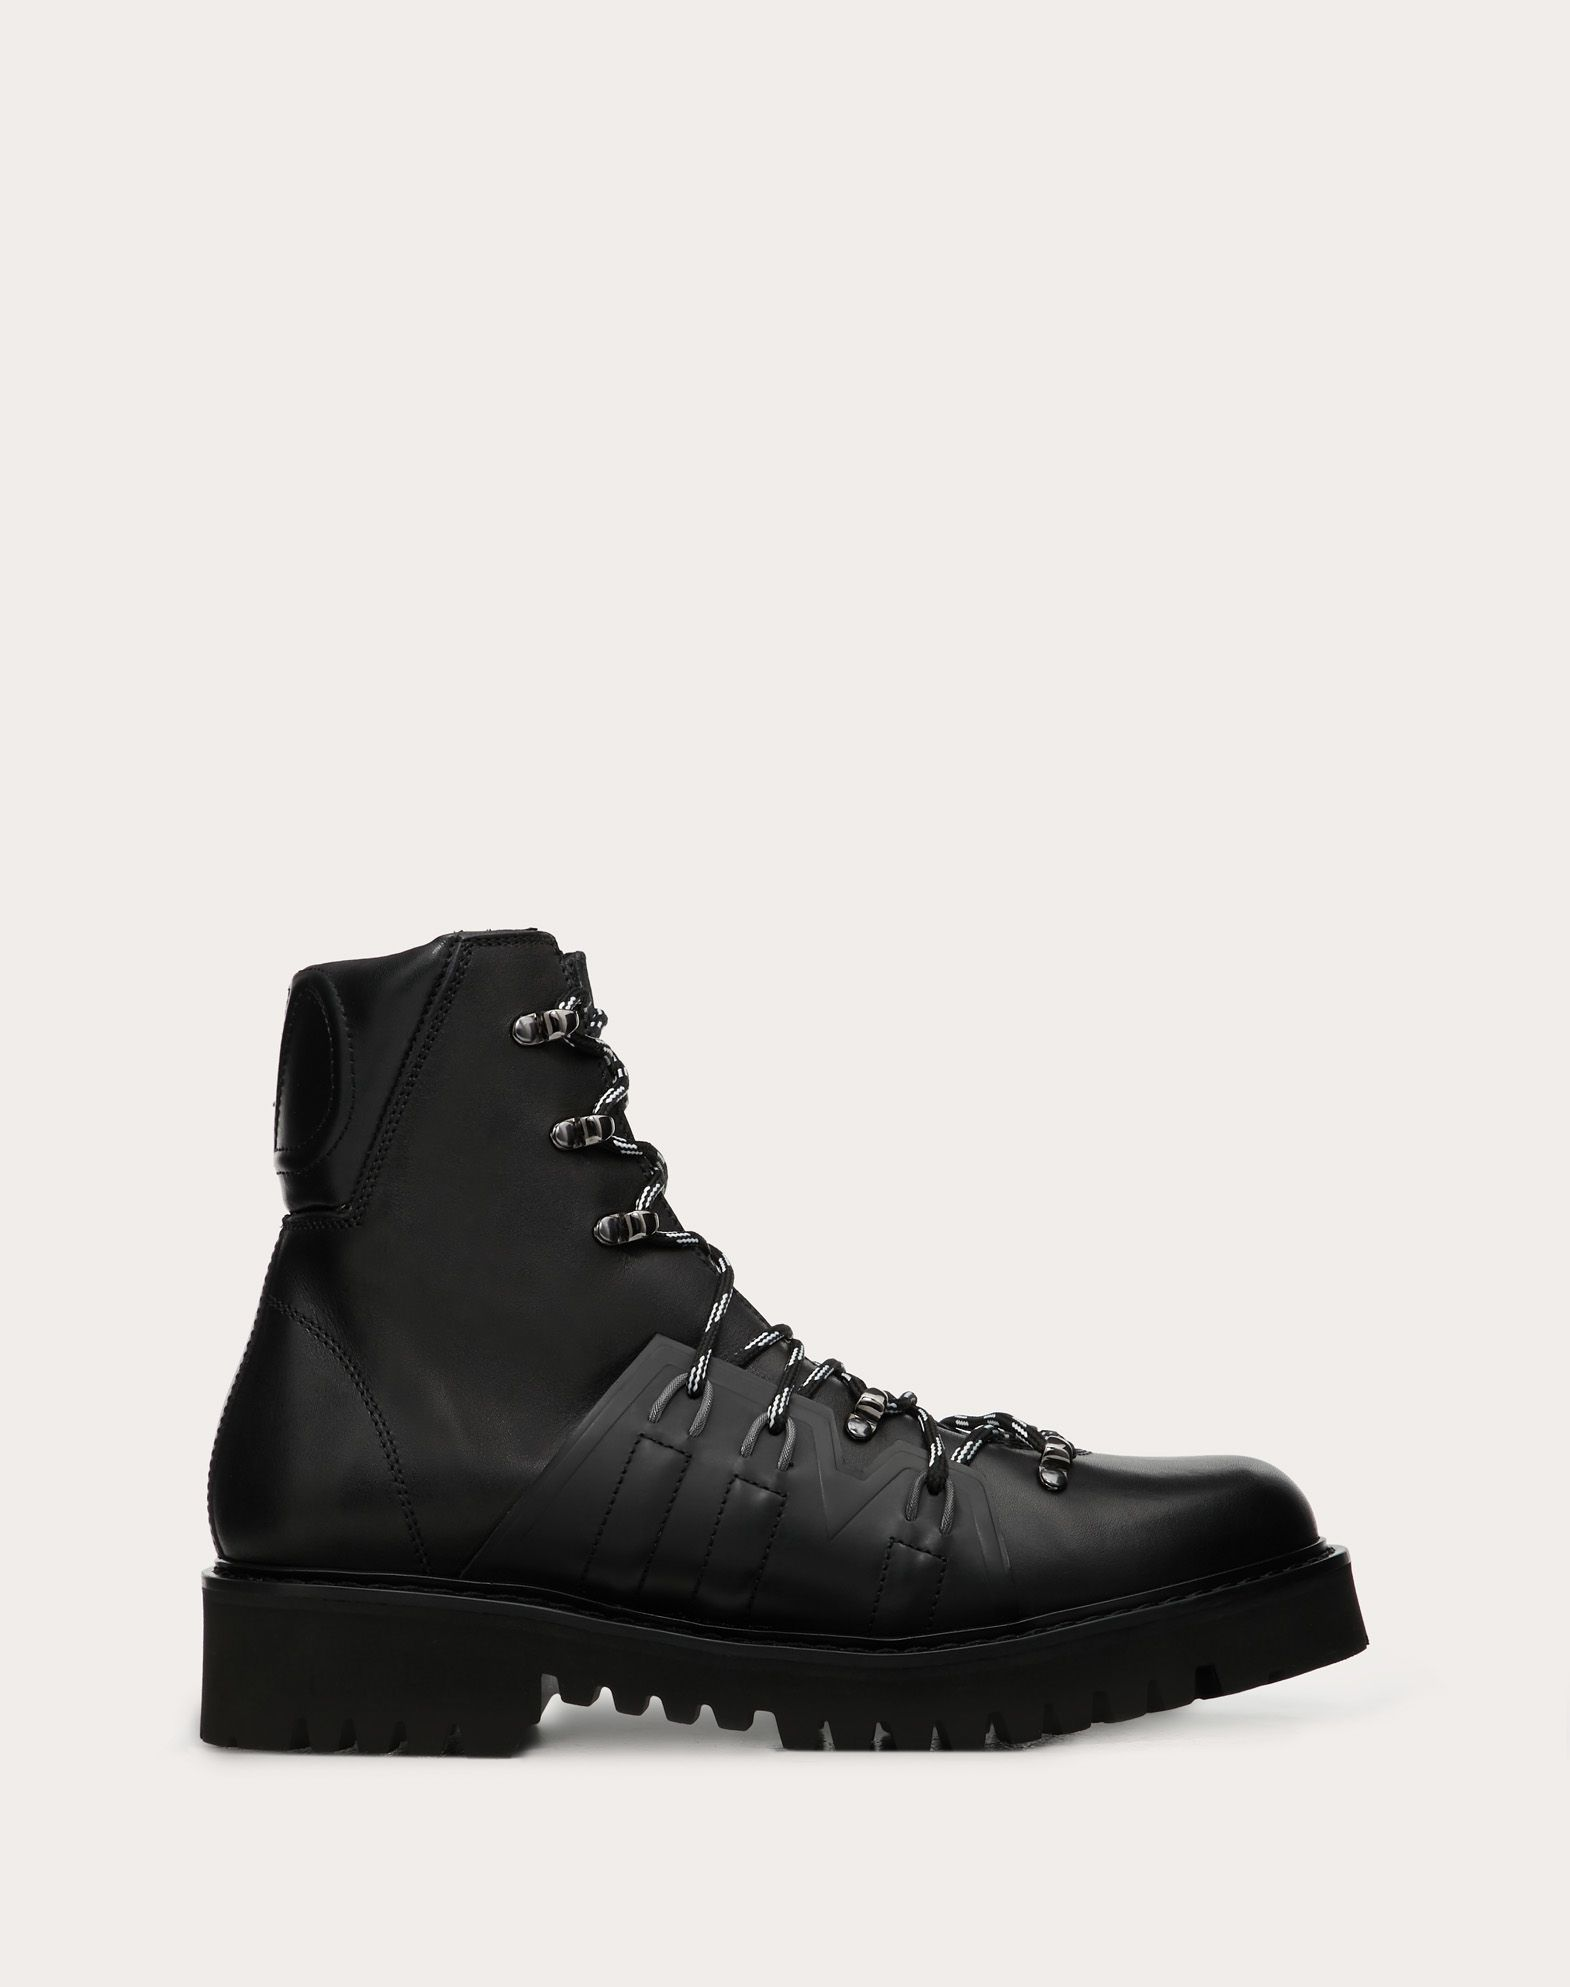 VLOGO boots in calfskin leather with shearling lining